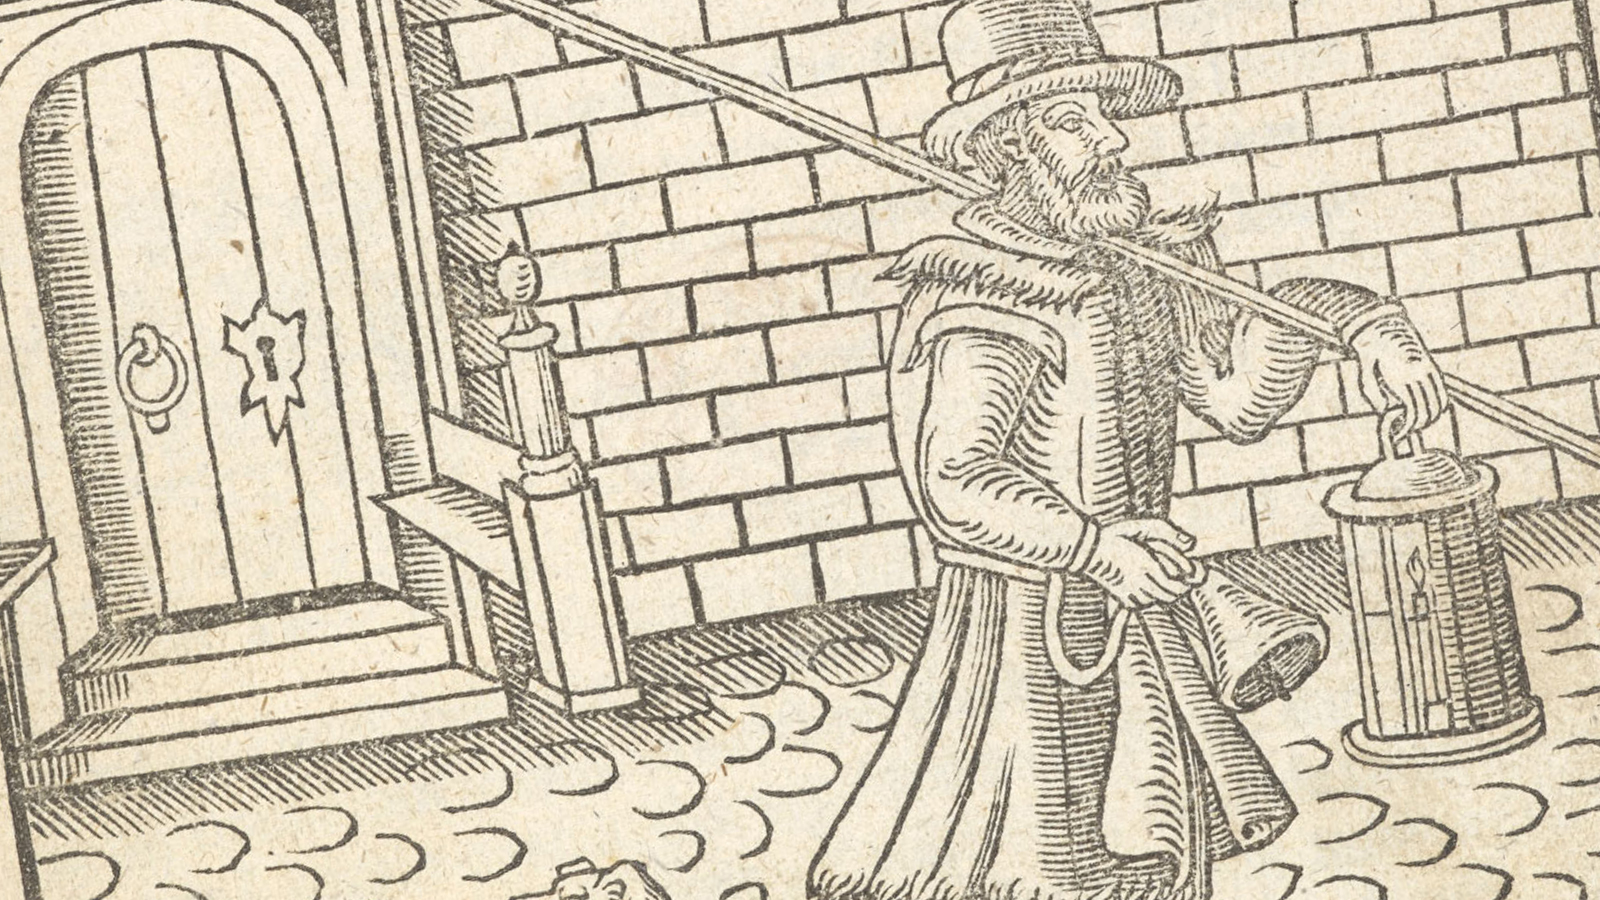 the role of women in elizabethan society